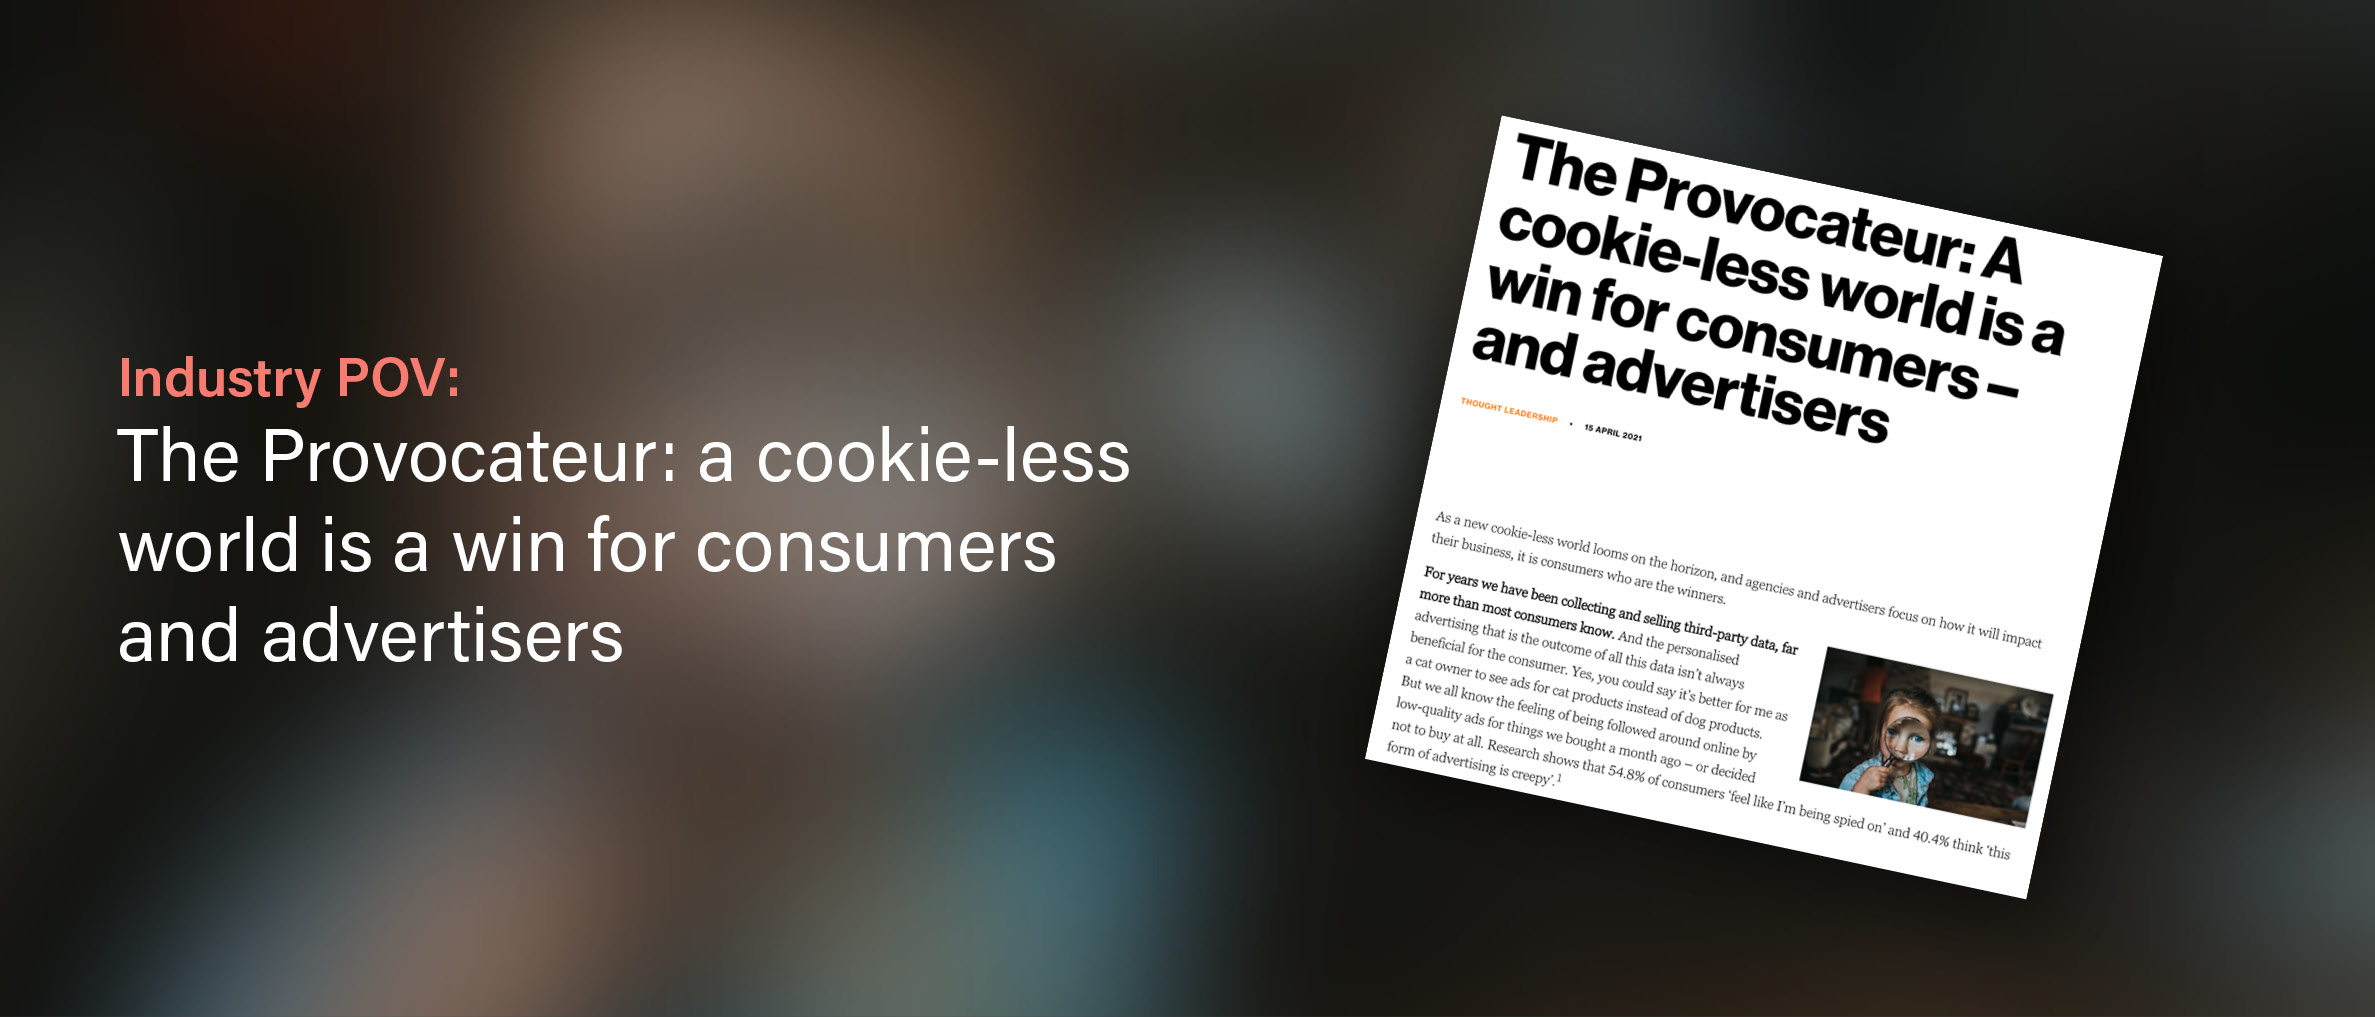 Wavemaker Global: The Provocateur: A Cookie-less World Is A Win For Consumers – And Advertisers